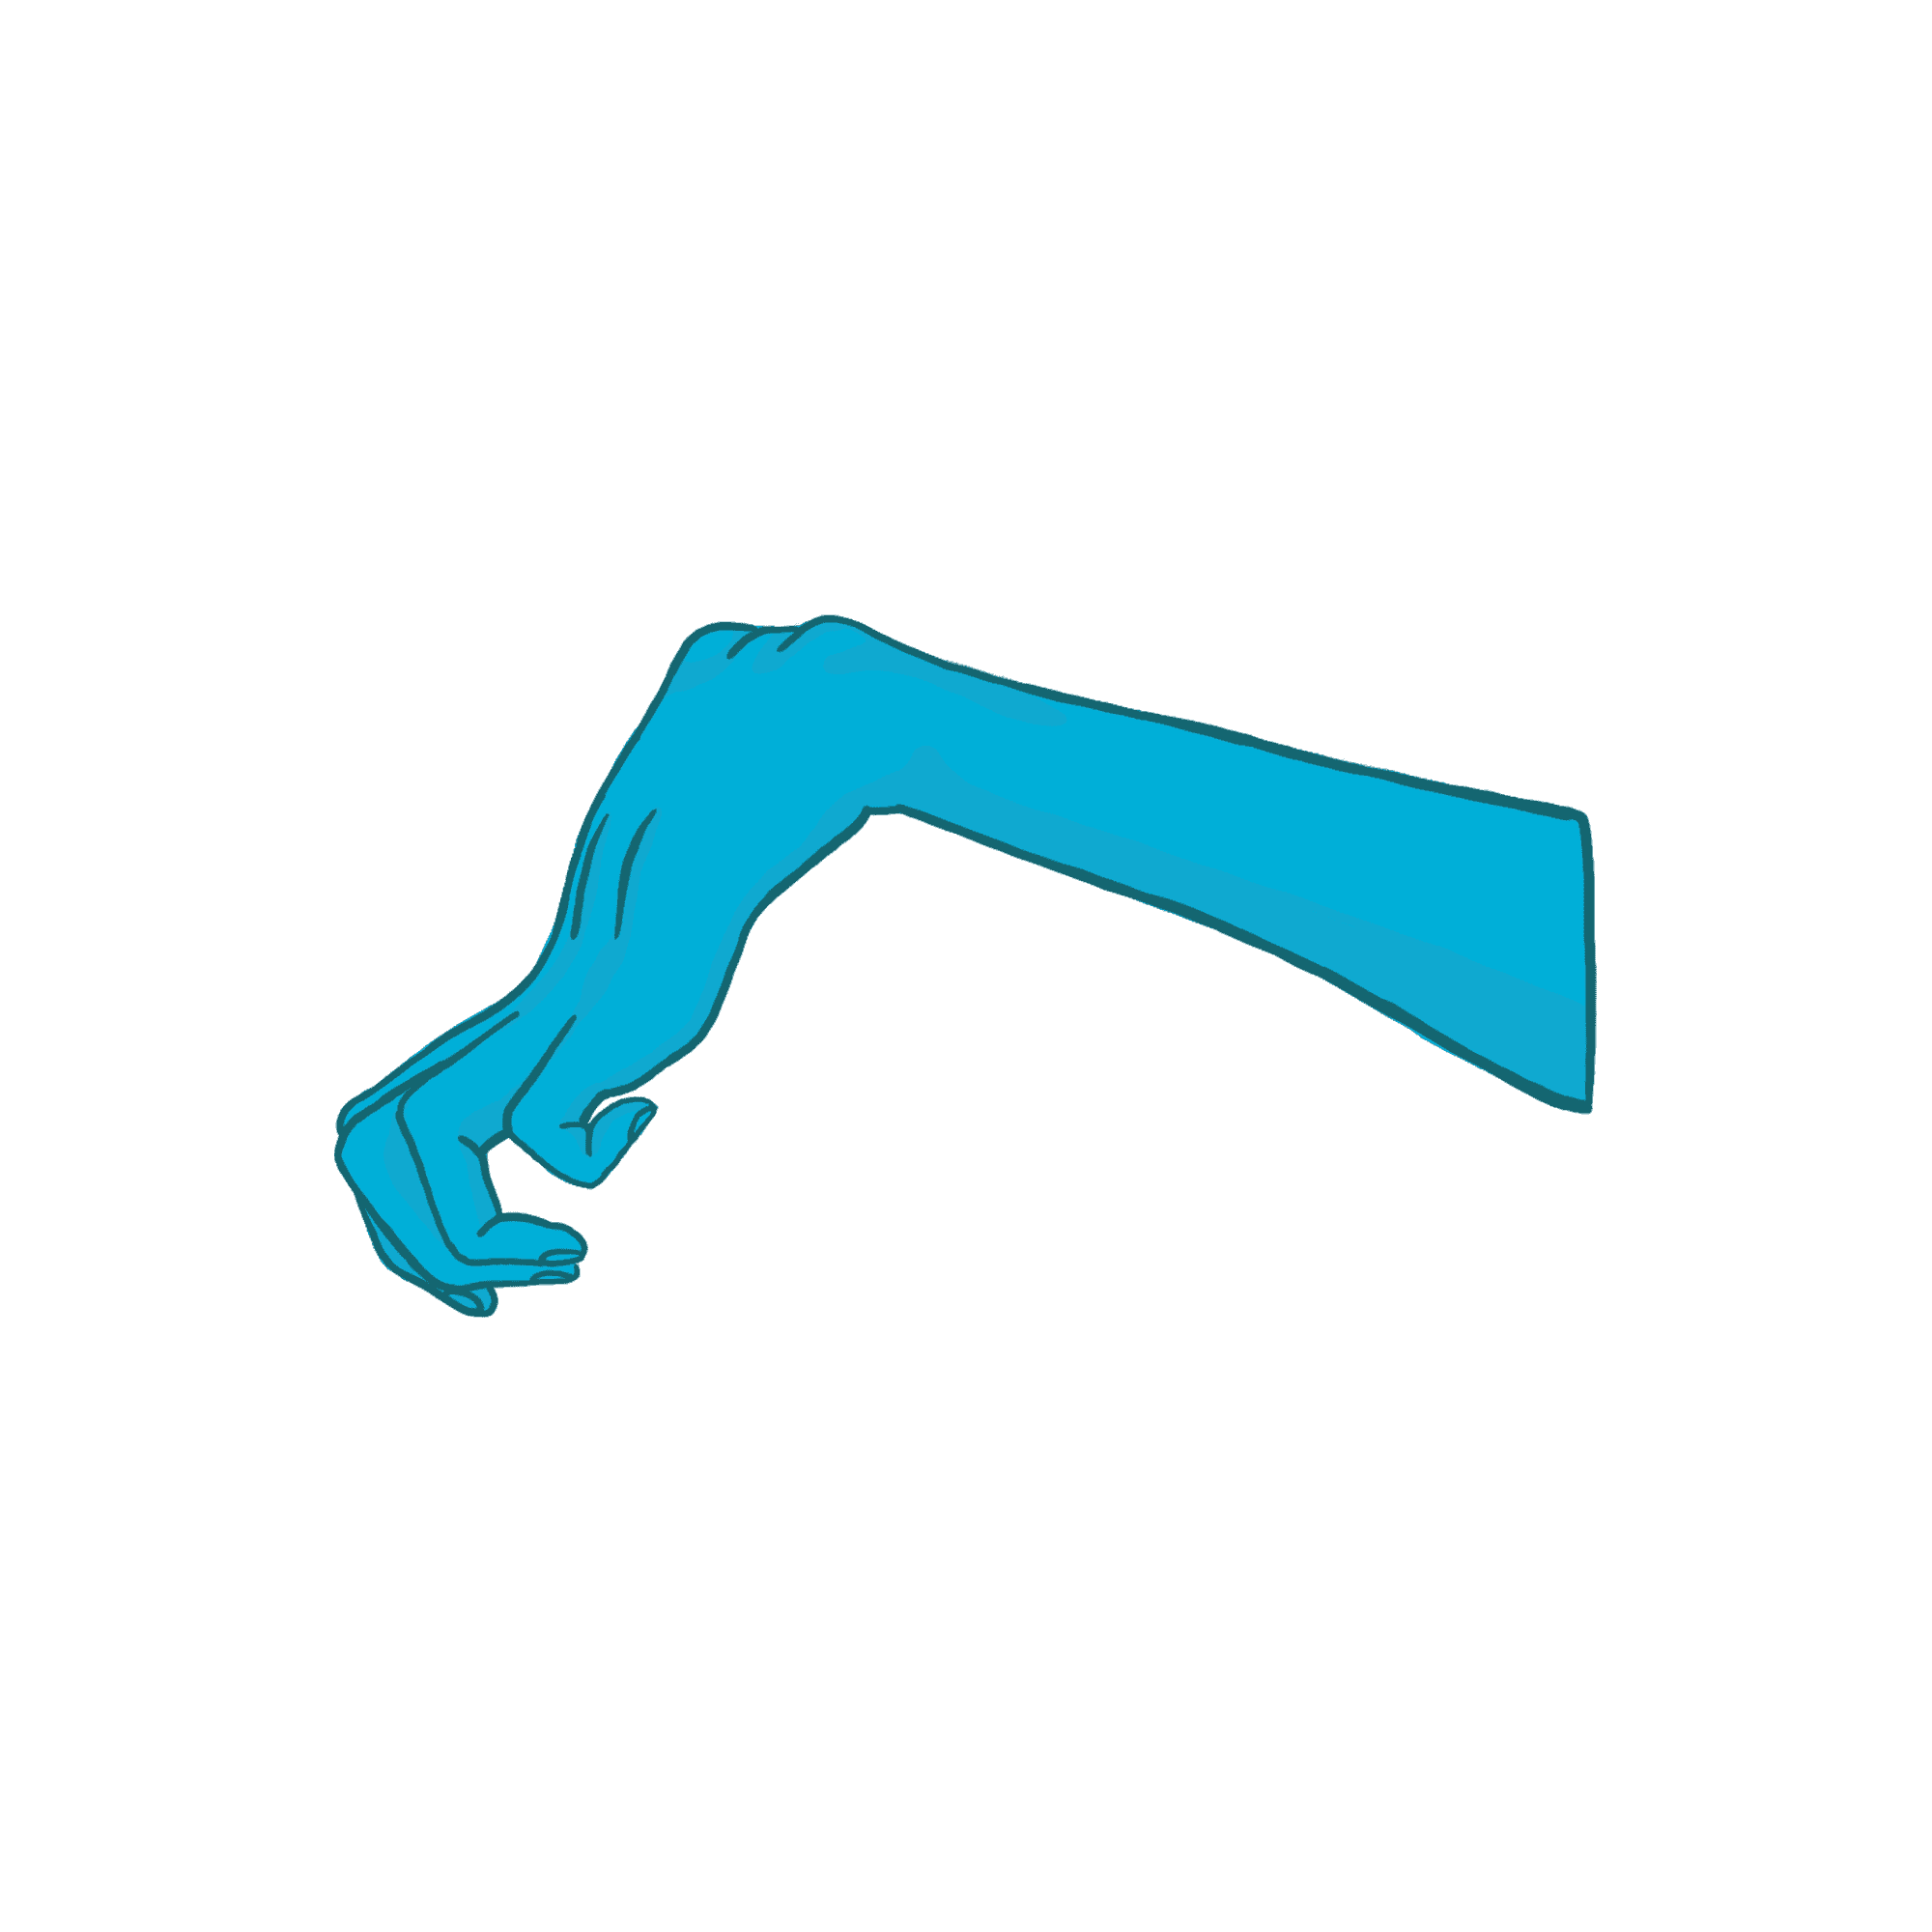 arm with hand in a claw-like position